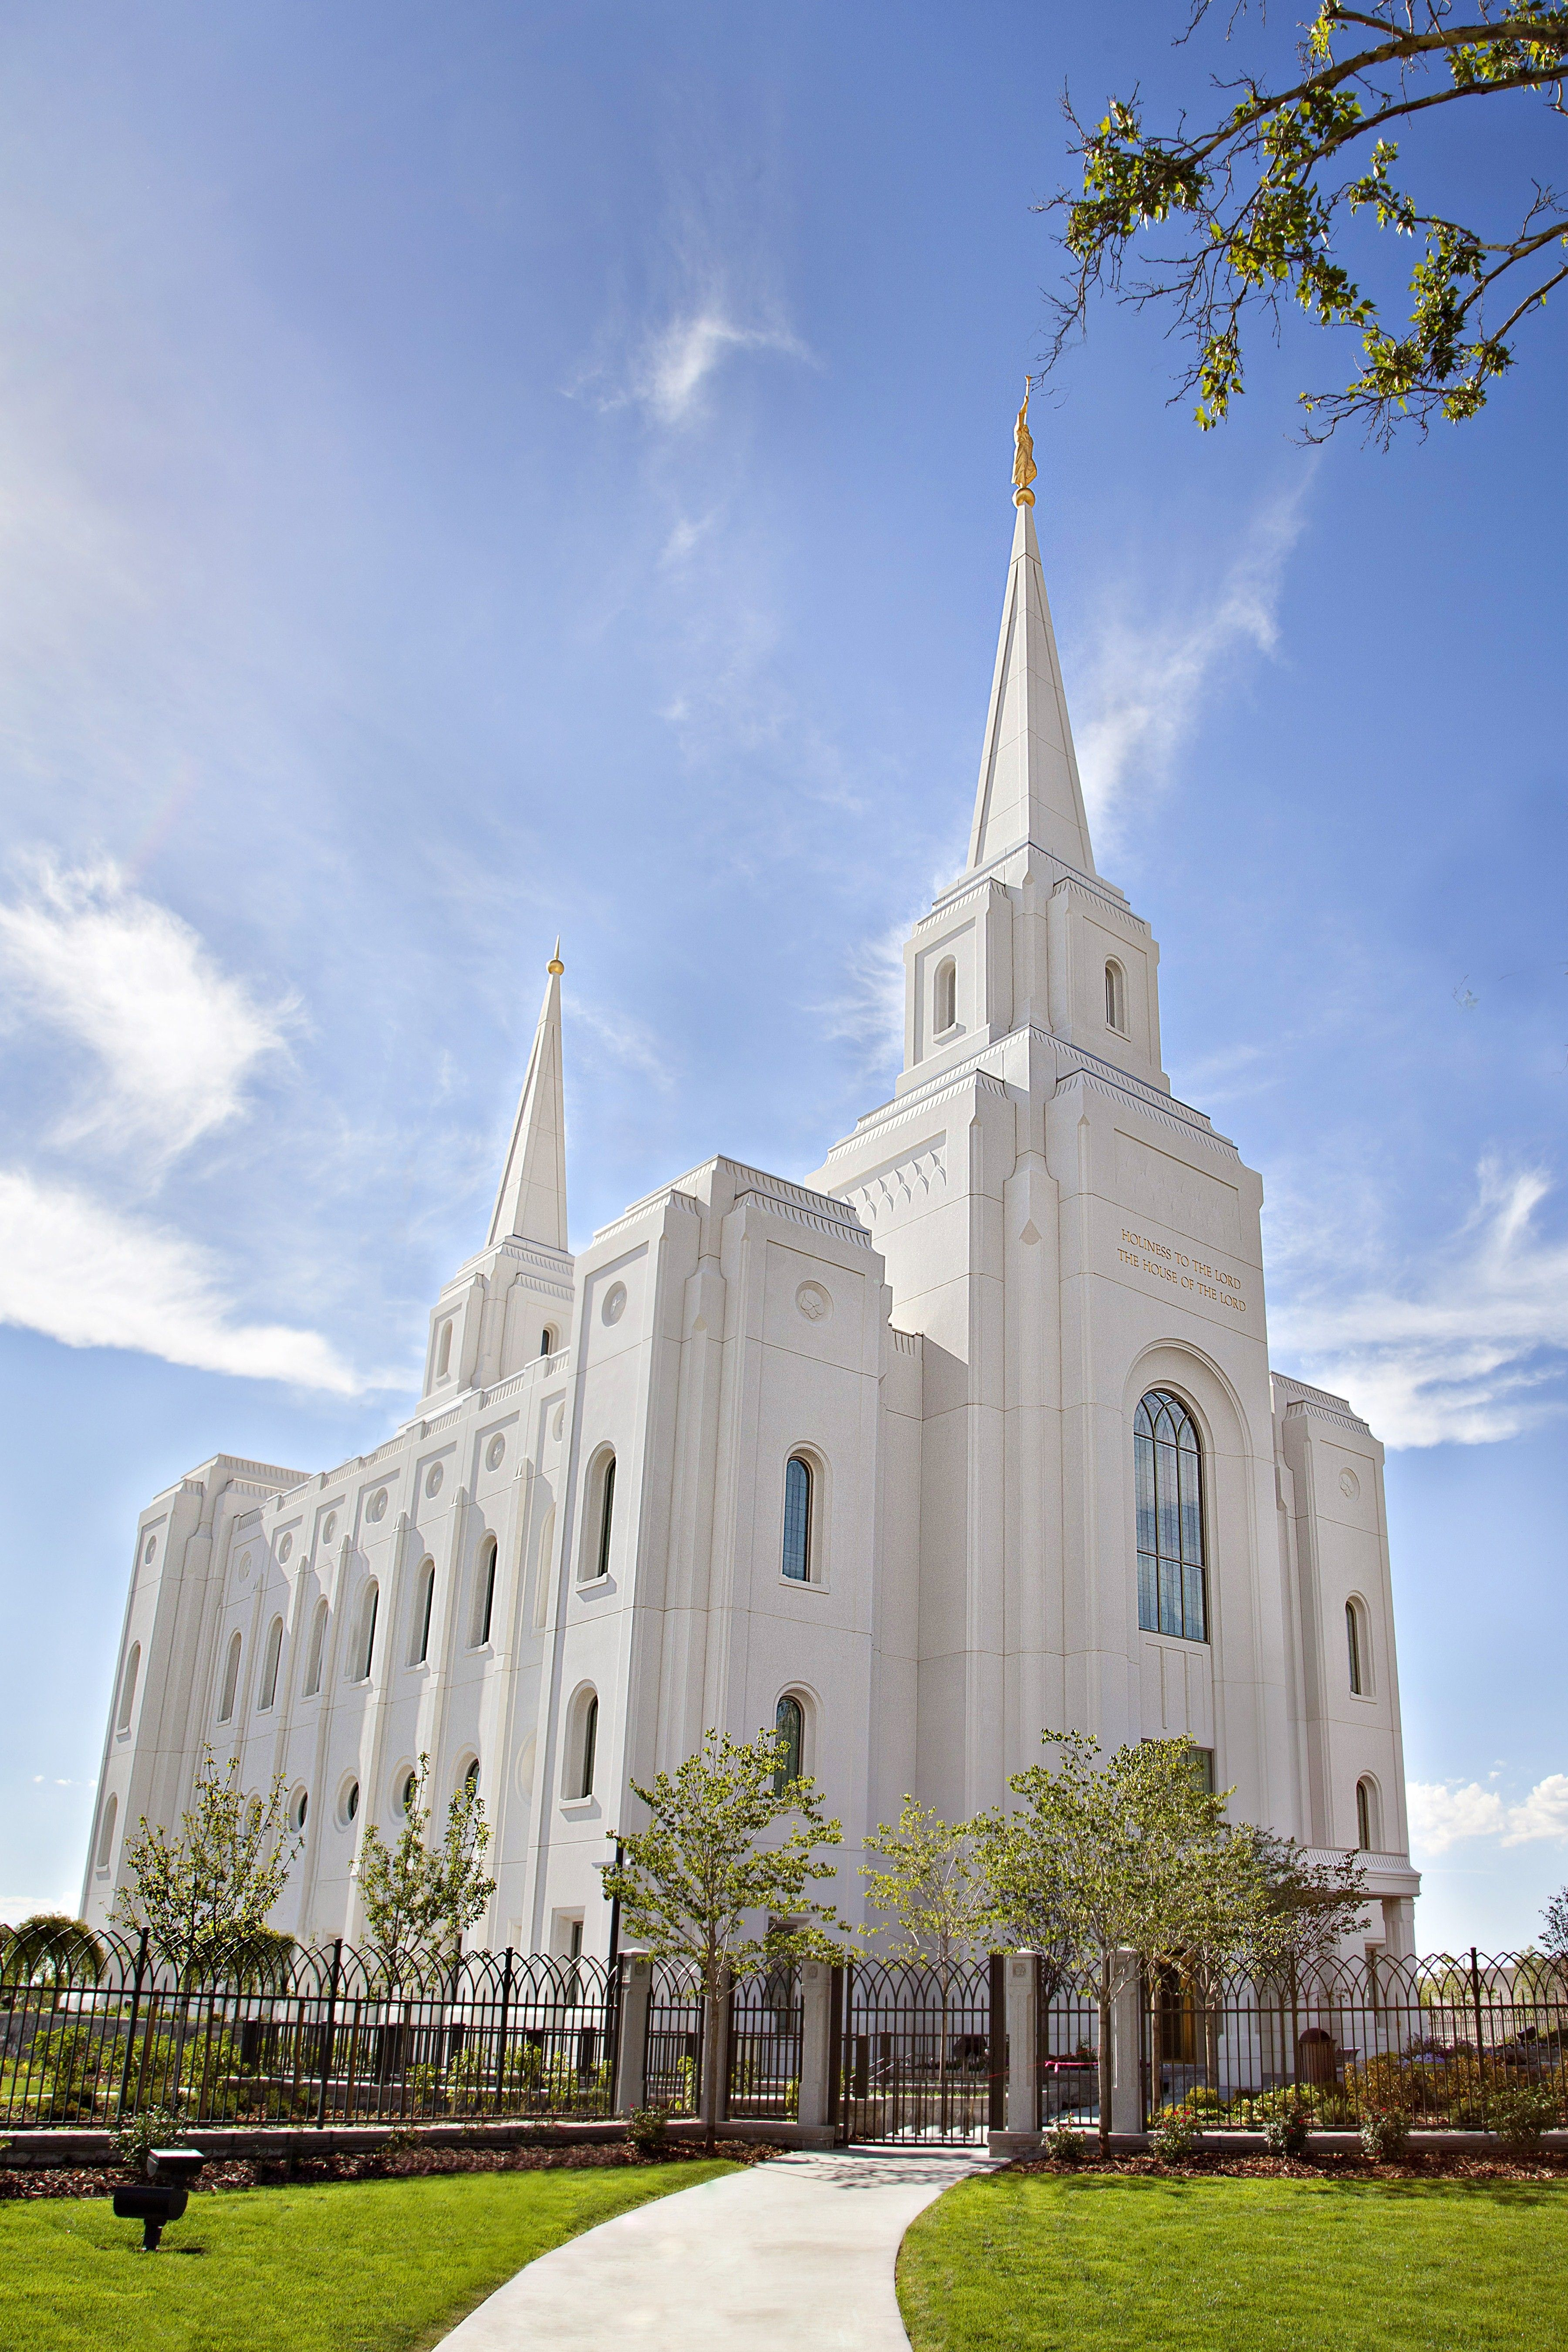 The Brigham City Utah Temple, including the scenery and entrance.